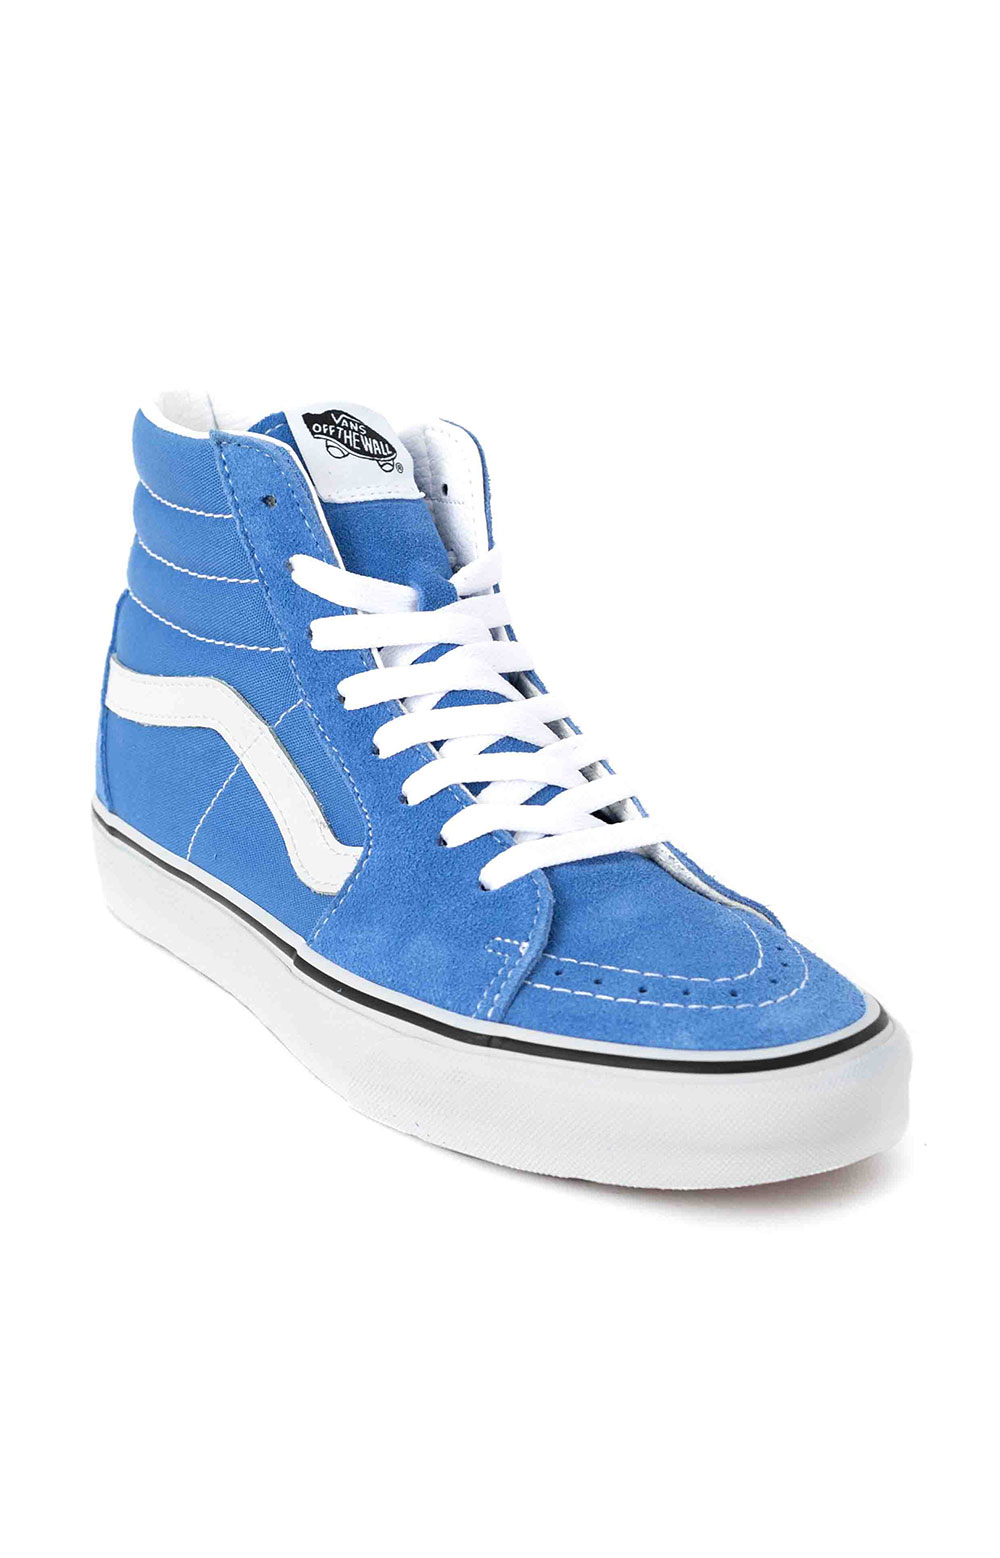 (U3C1UJ) Sk8-Hi Shoes - Nebulas Blue  3